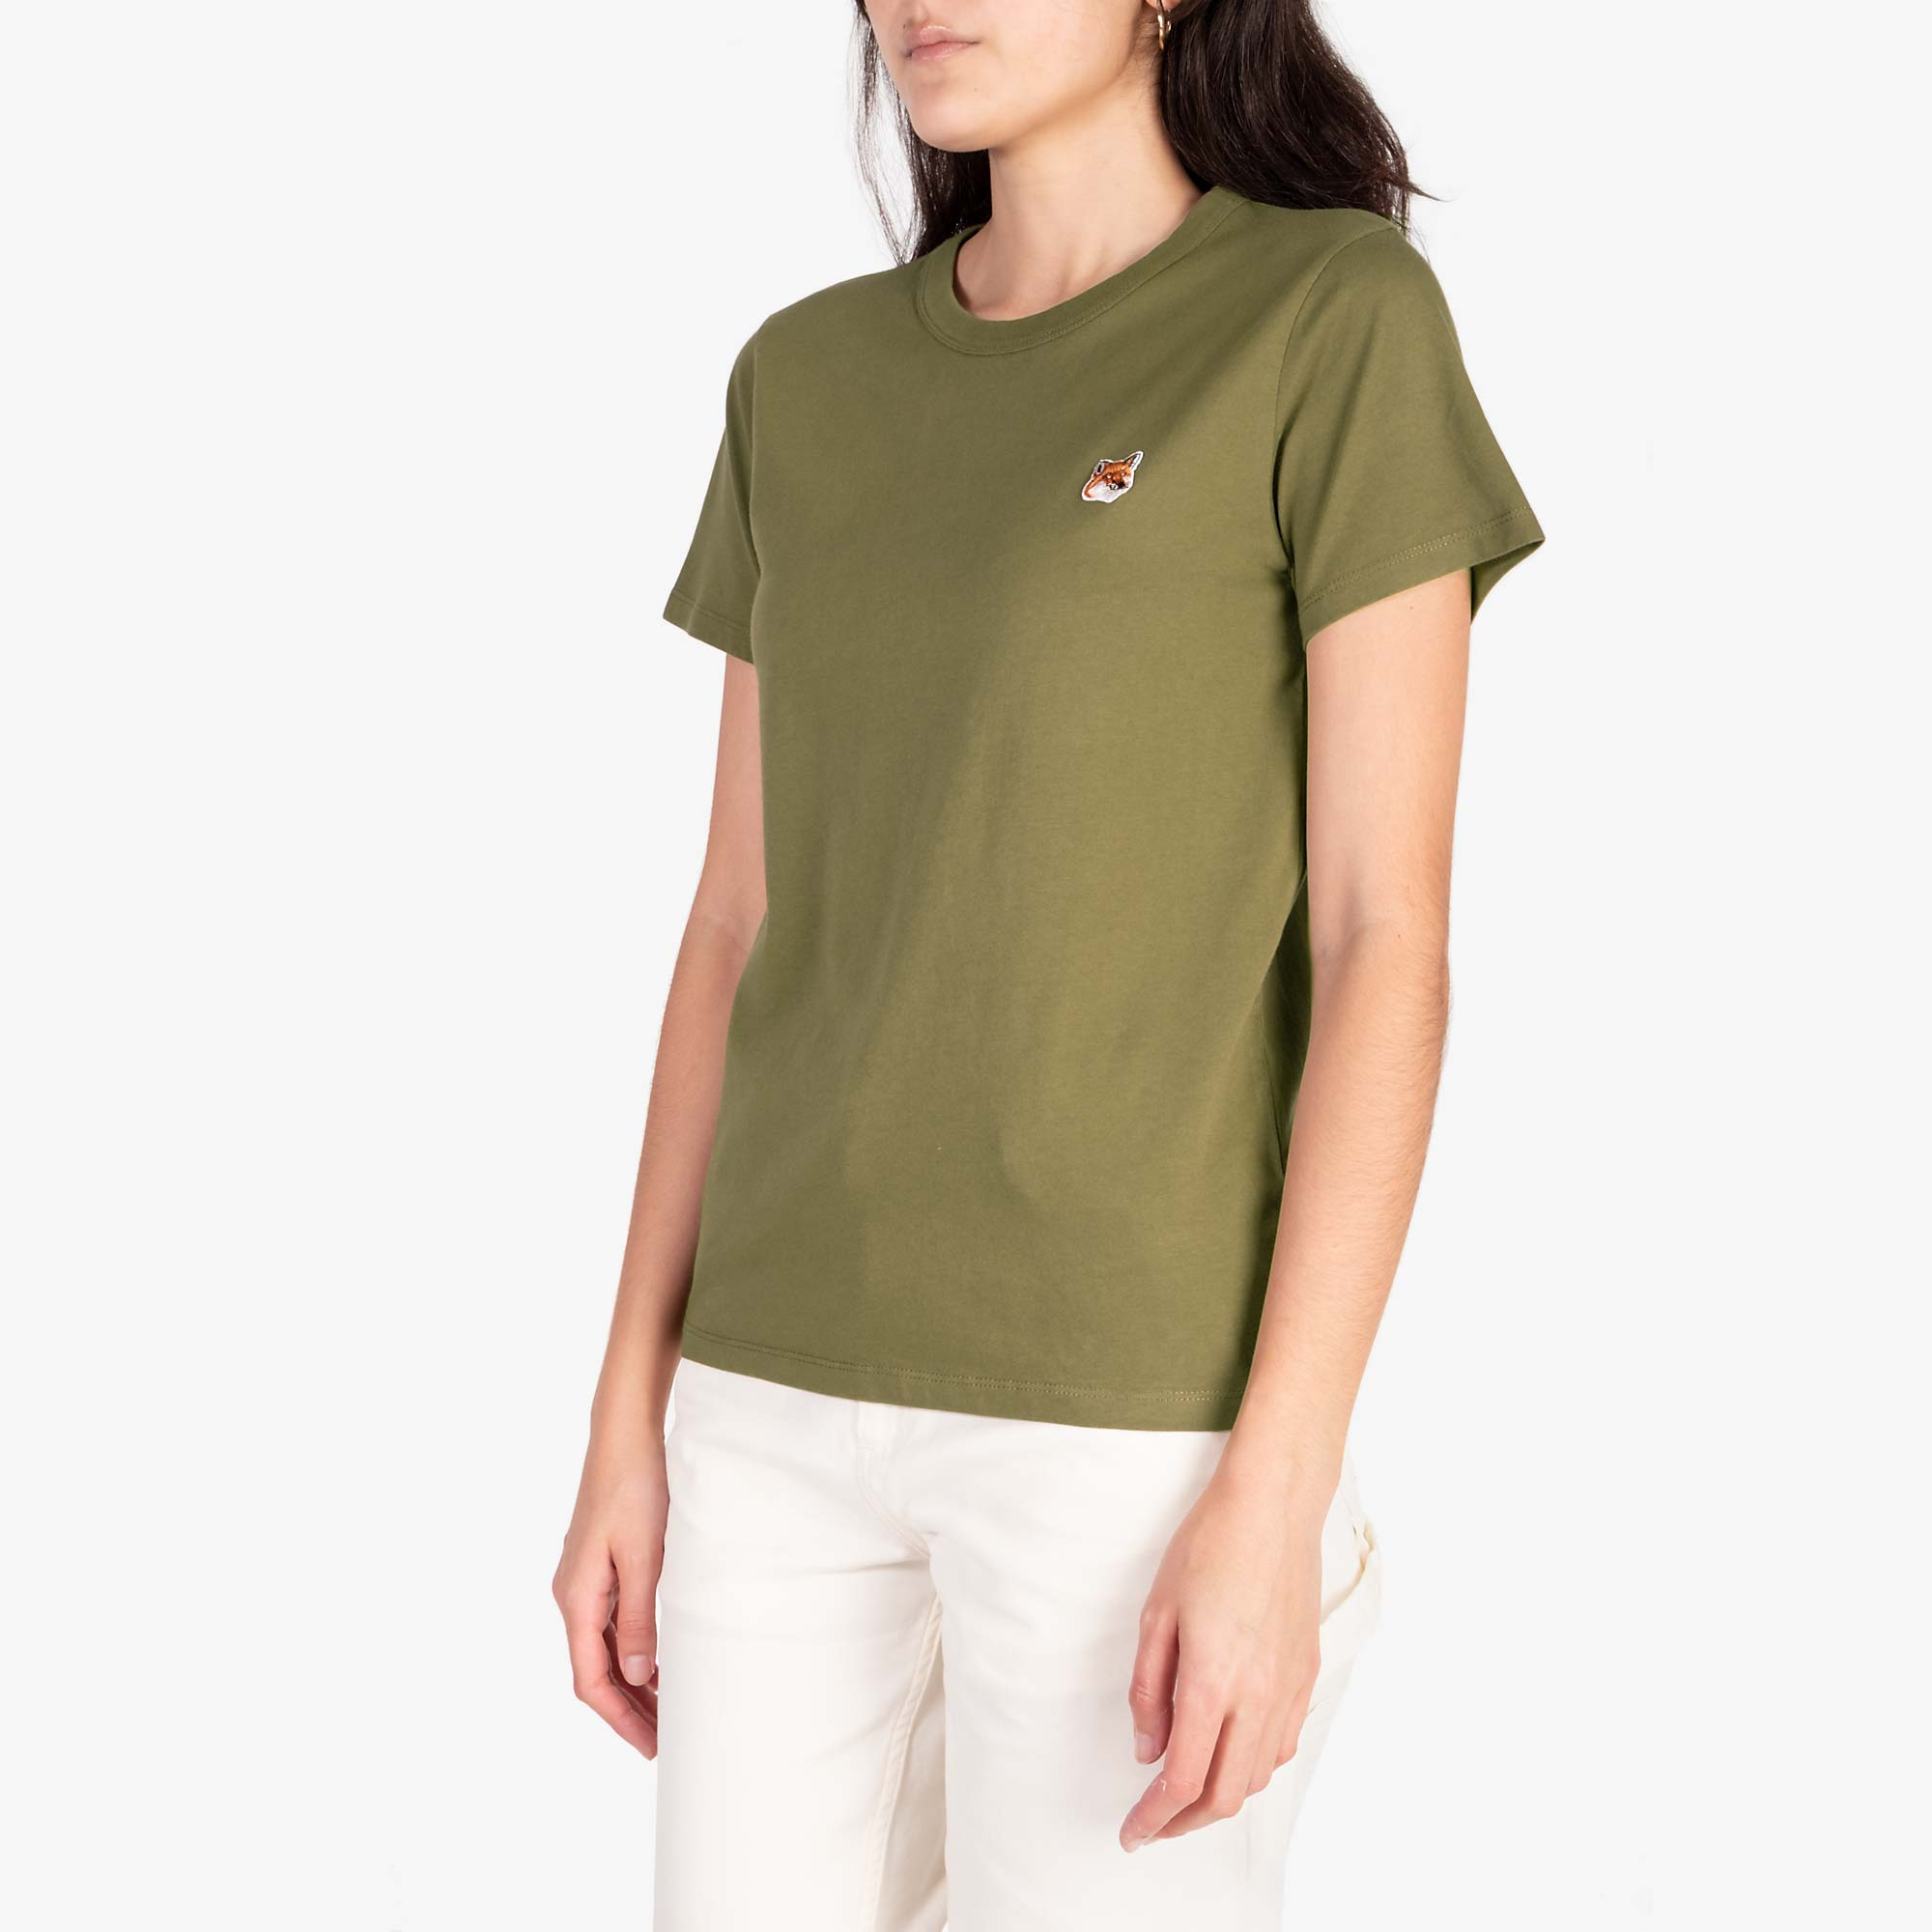 Maison Kitsune Women's Fox Head Patch Tee - Khaki 4